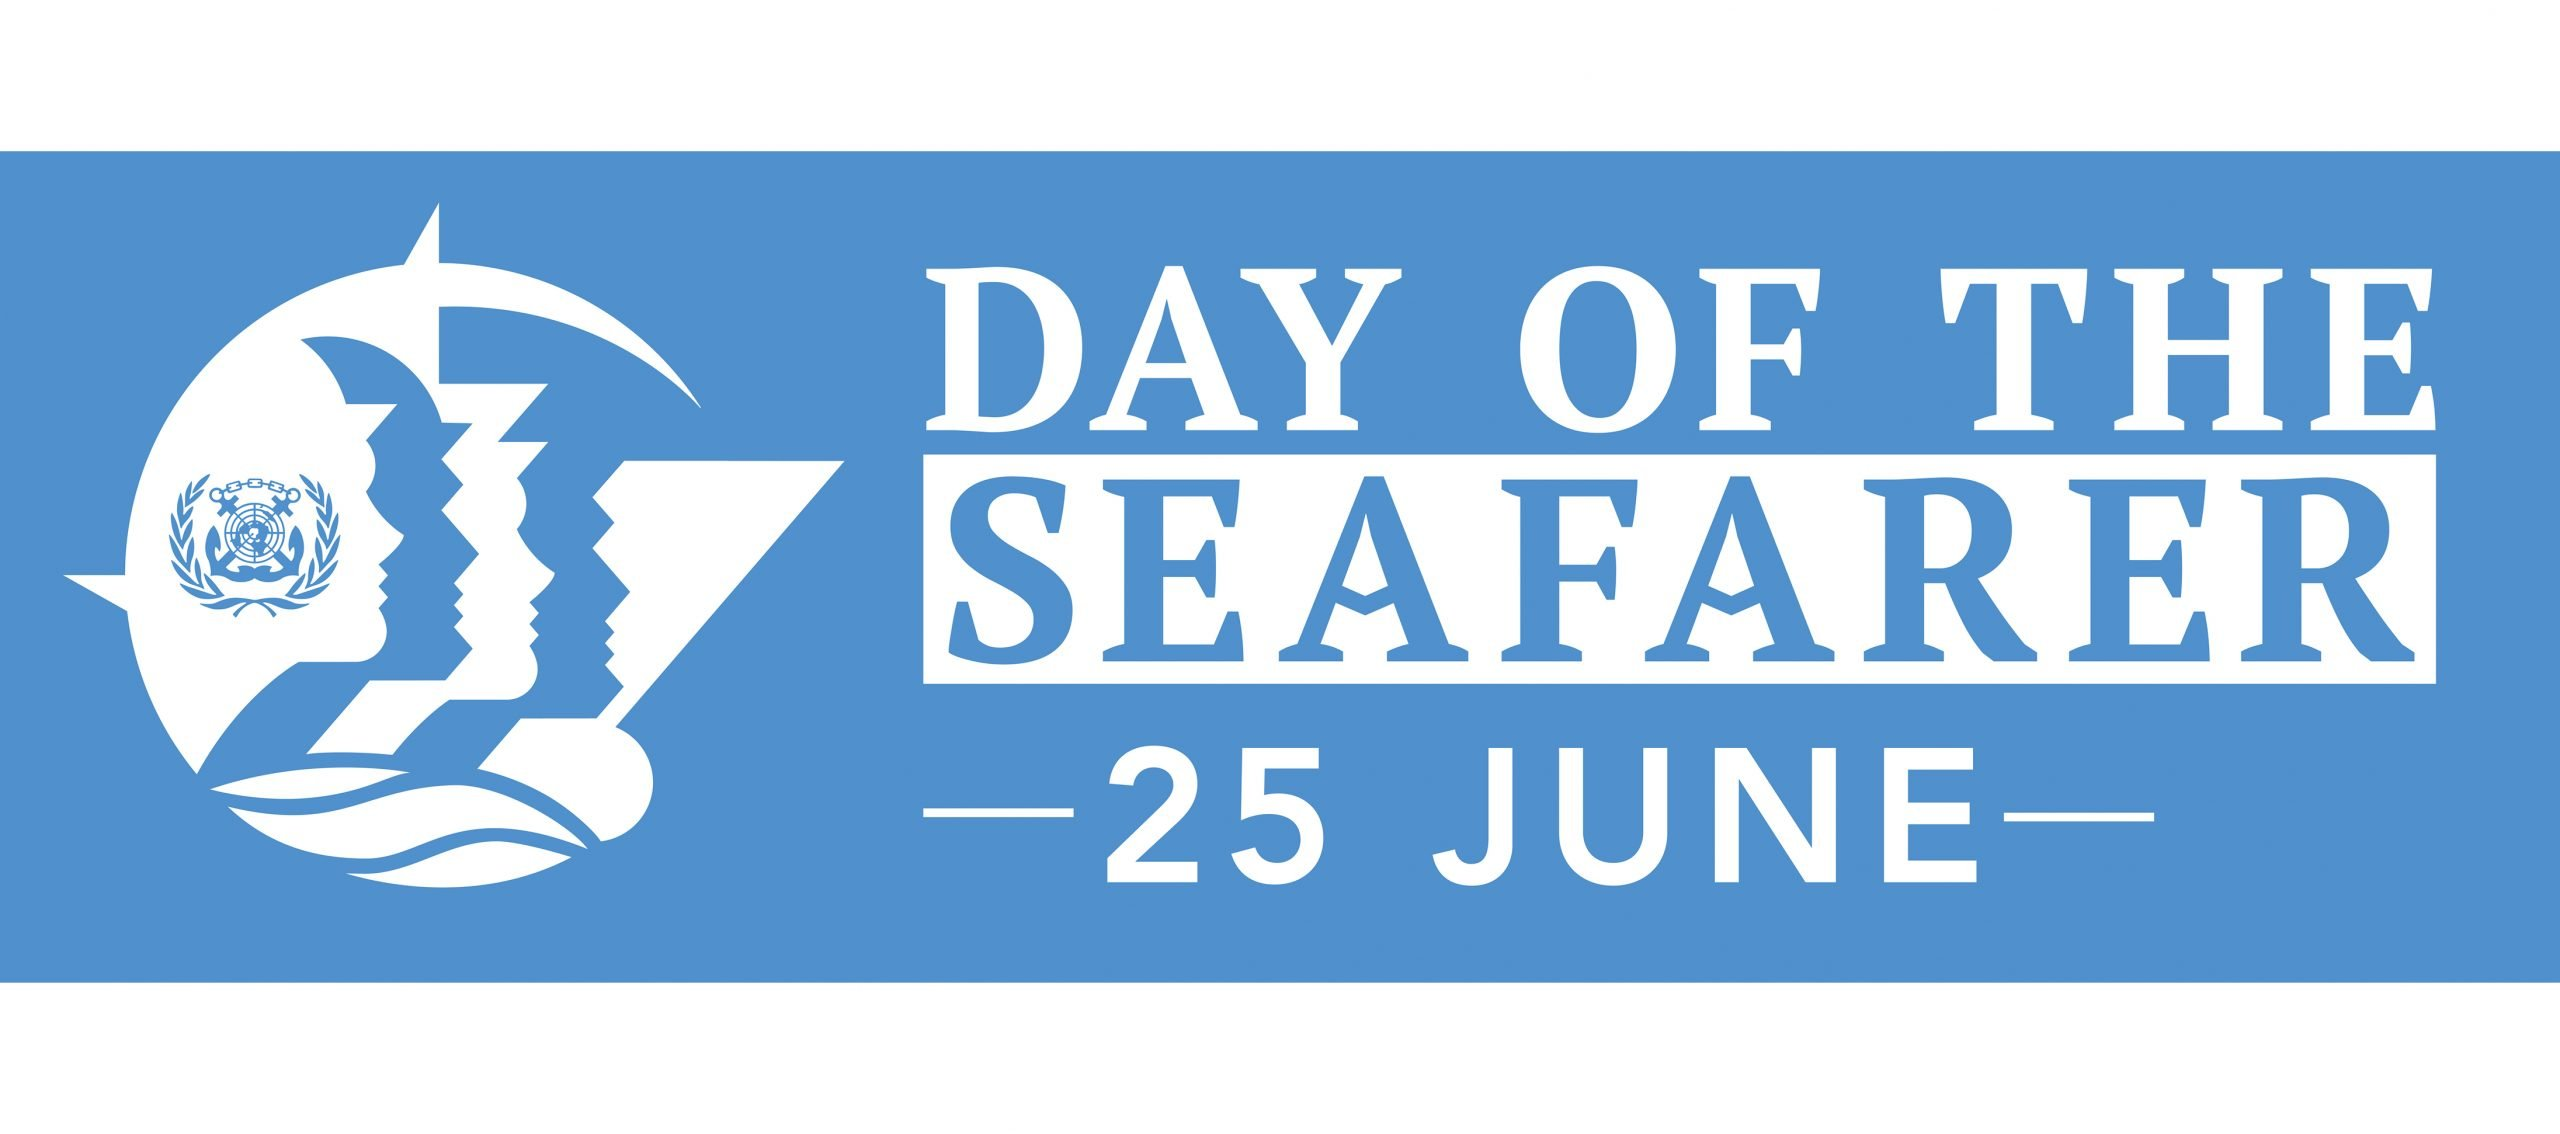 The Day of the Seafarer – 25th June 2019